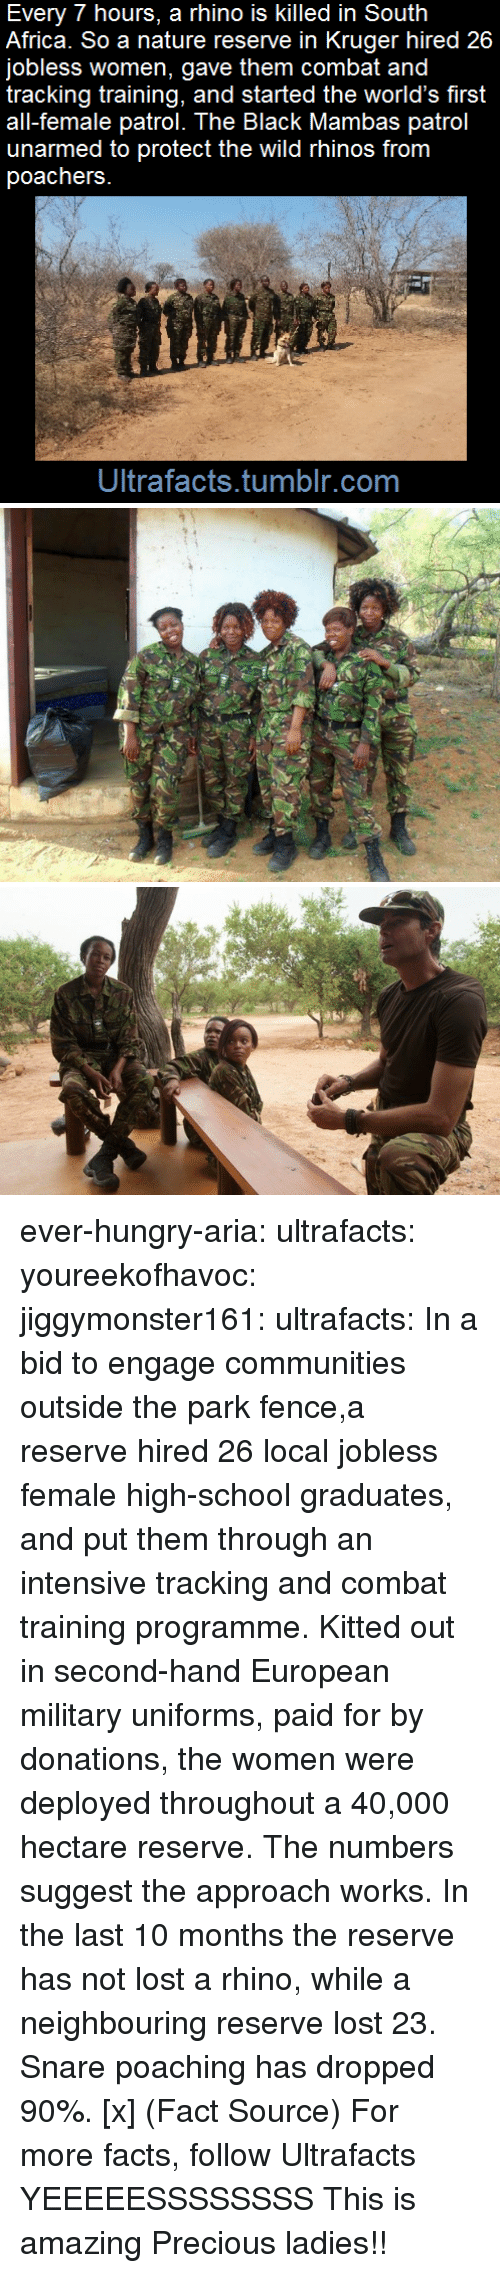 Africa, Facts, and Hungry: Every 7 hours, a rhino is killed in South  Africa. So a nature reserve in Kruger hired 26  jobless women, gave them combat and  tracking training, and started the world's first  all-female patrol. The Black Mambas patrol  unarmed to protect the wild rhinos from  poachers  Ultrafacts.tumblr.com ever-hungry-aria:  ultrafacts:  youreekofhavoc:  jiggymonster161:  ultrafacts:    In a bid to engage communities outside the park fence,a reserve hired 26 local jobless female high-school graduates, and put them through an intensive tracking and combat training programme. Kitted out in second-hand European military uniforms, paid for by donations, the women were deployed throughout a 40,000 hectare reserve.   The numbers suggest the approach works. In the last 10 months the reserve has not lost a rhino, while a neighbouring reserve lost 23. Snare poaching has dropped 90%. [x]   (Fact Source) For more facts, follow Ultrafacts     YEEEEESSSSSSSS  This is amazing     Precious ladies!!